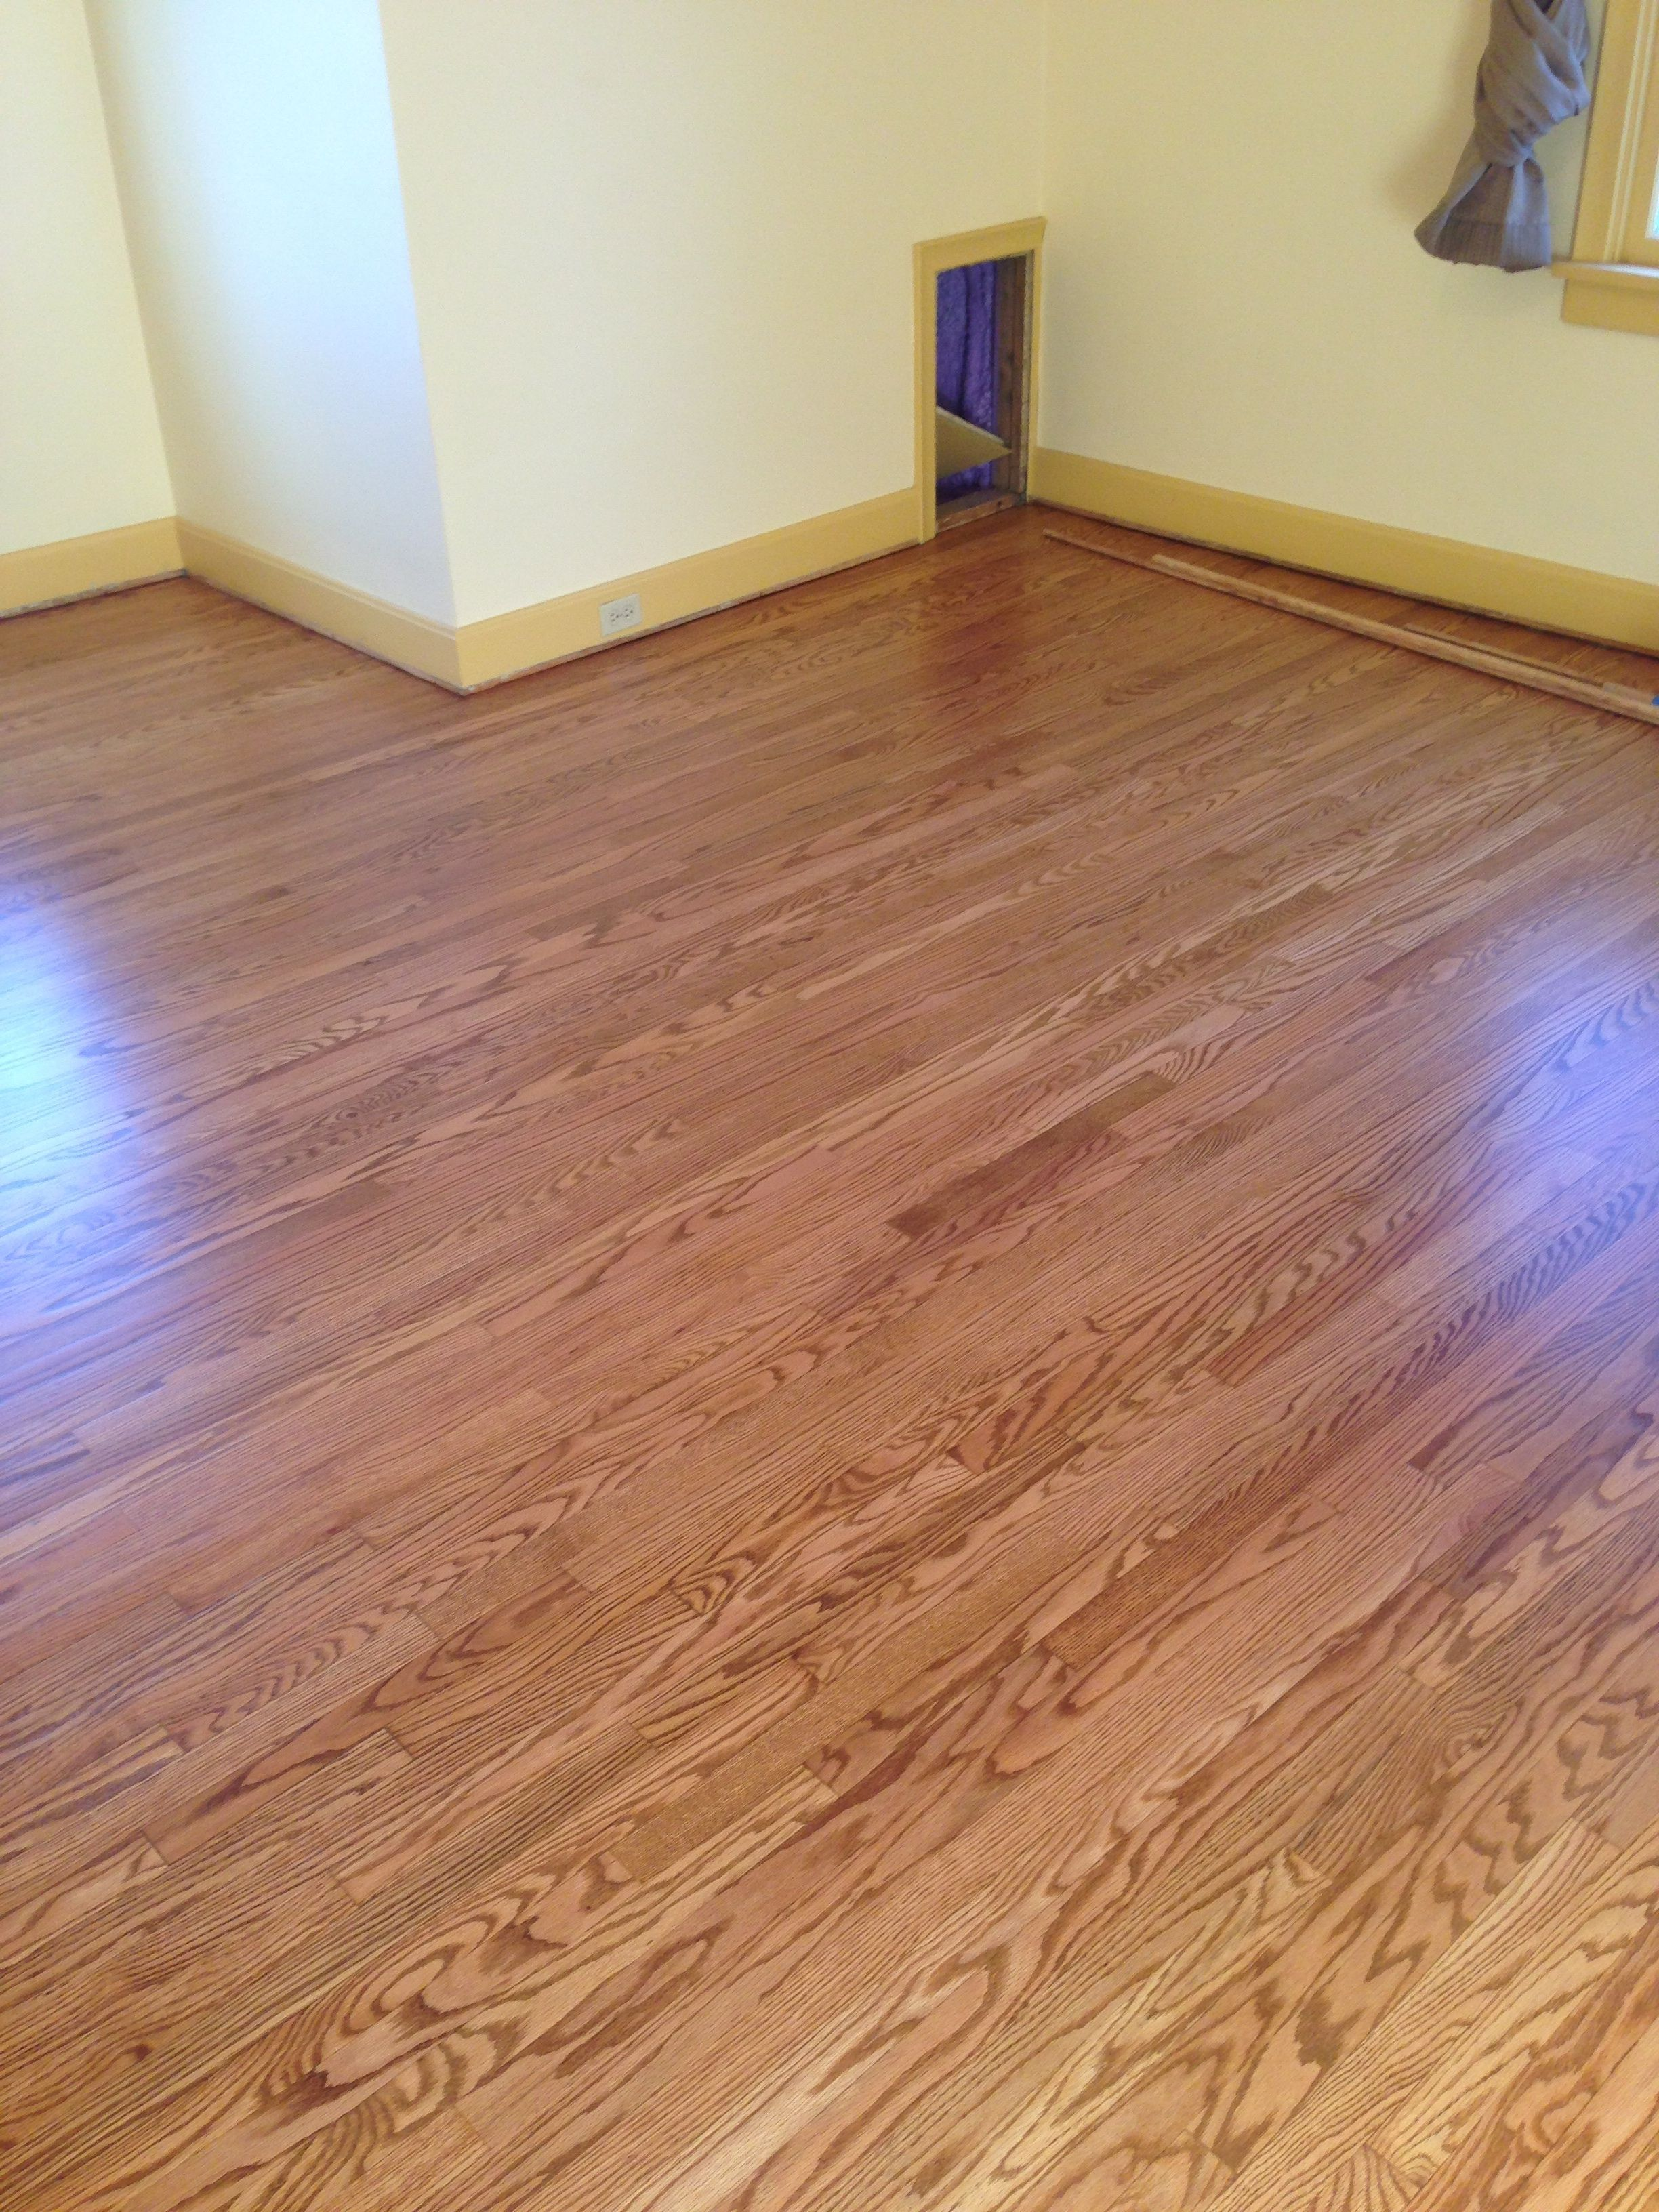 S Red Oak Hardwood Floor Refinished By Smithbrosfloors - Hardwood floor refinishing cape cod ma